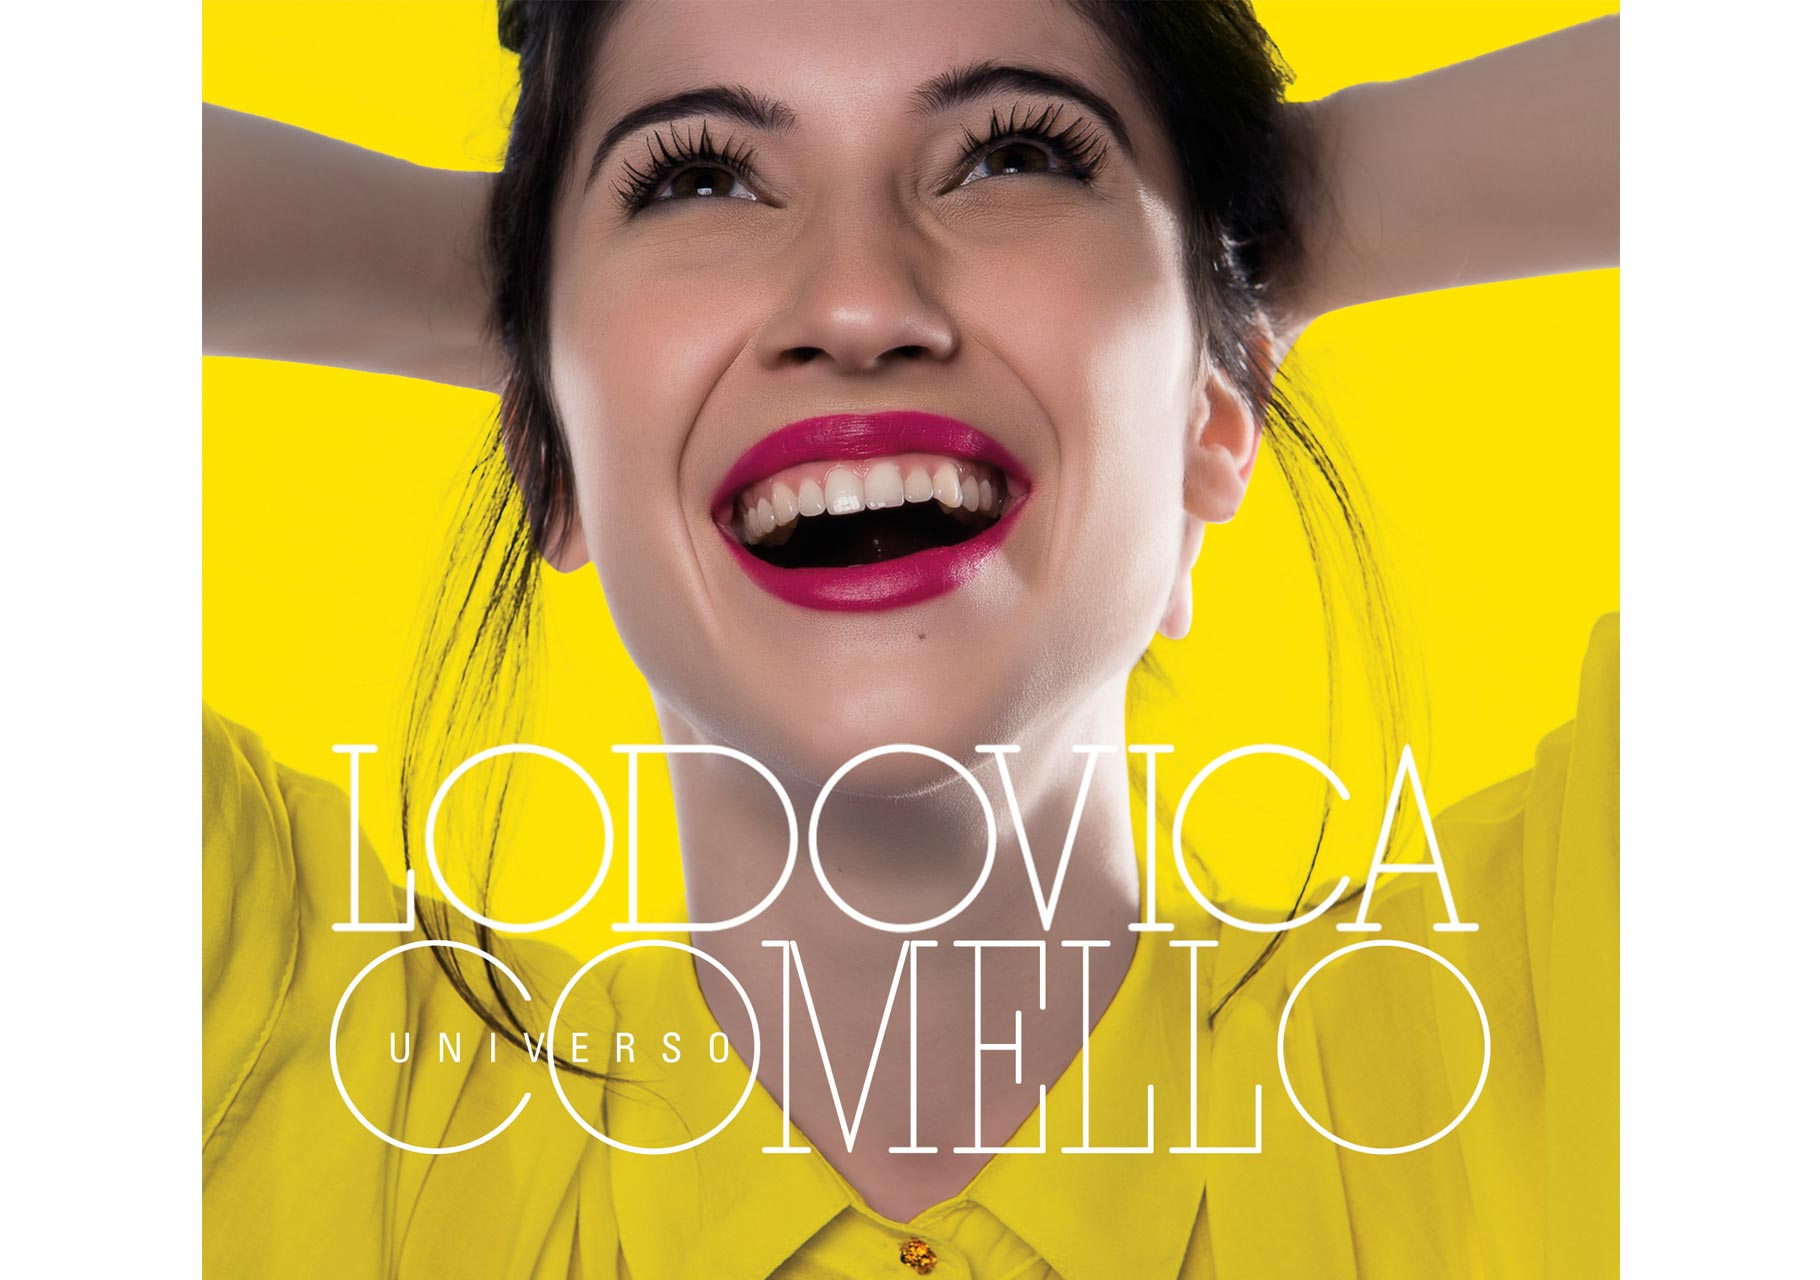 Lodovica Comello Cover